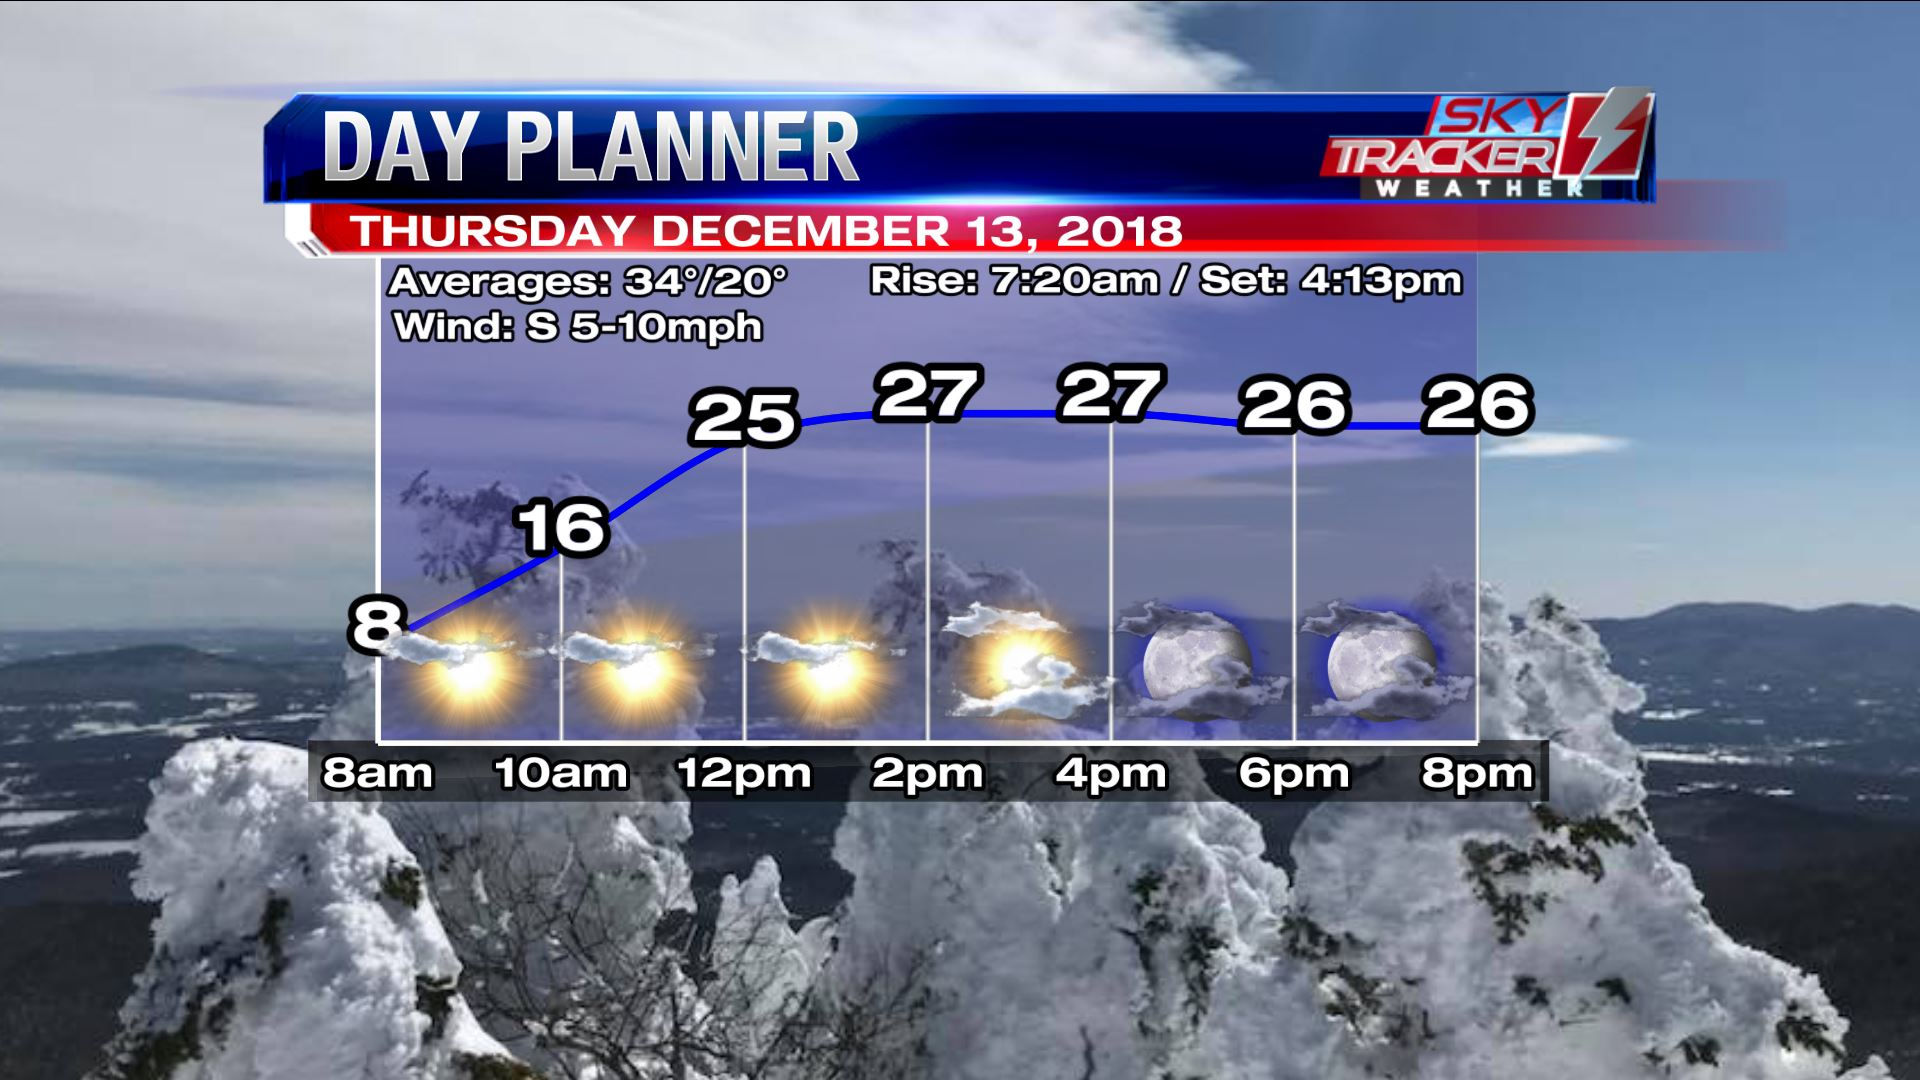 Planner for Thursday December 13 2018